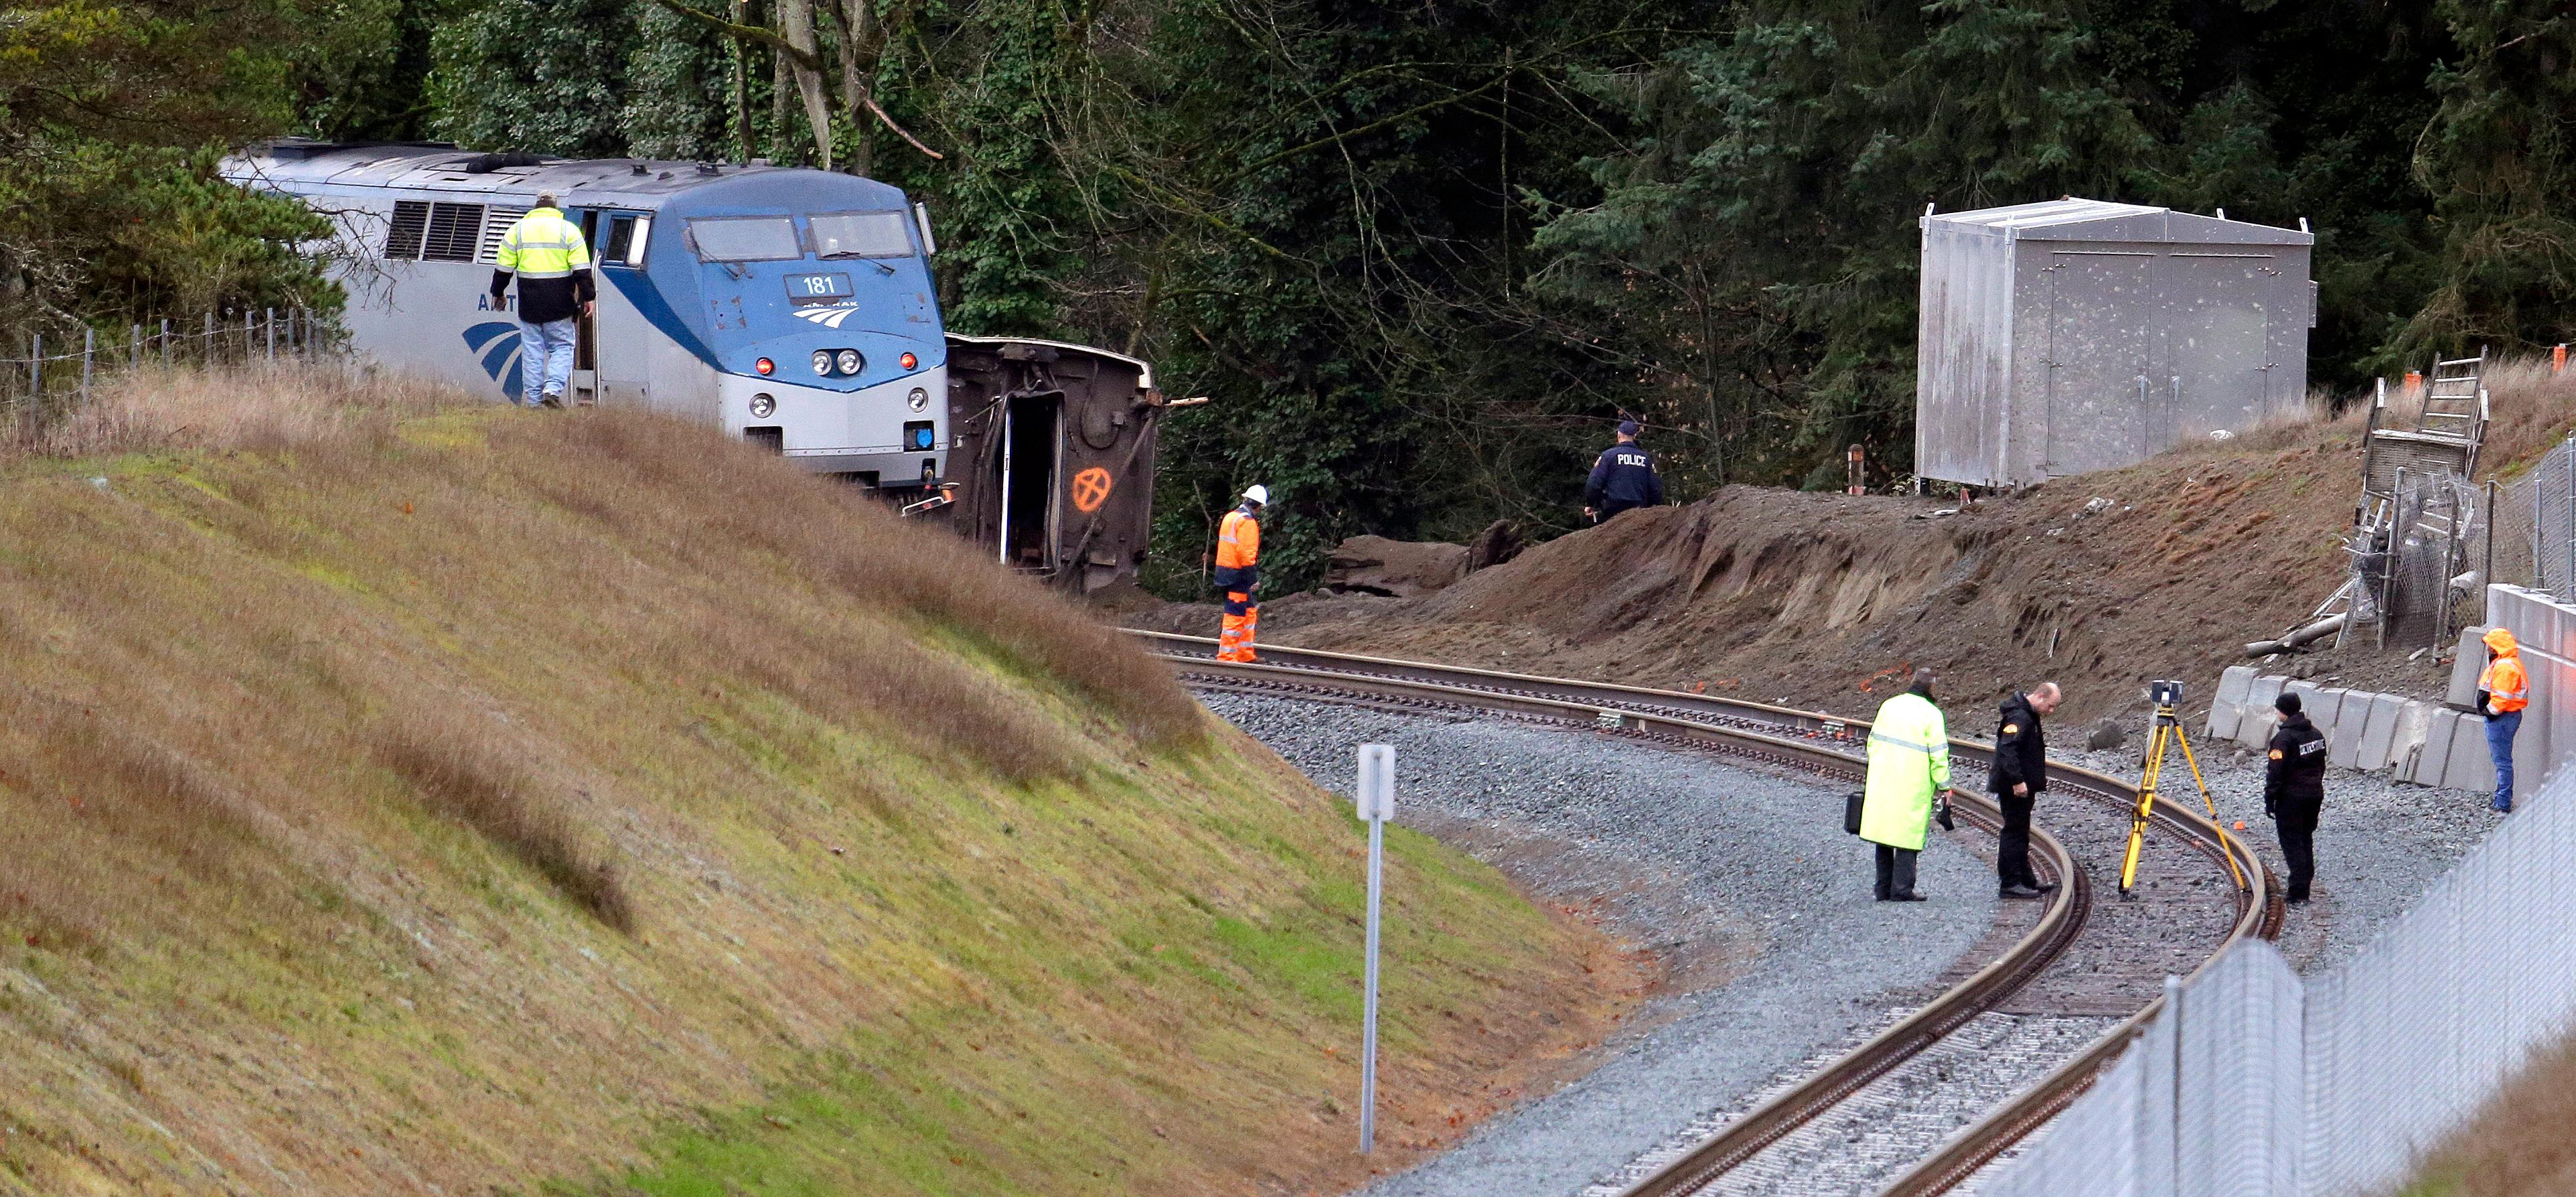 Cars from an Amtrak train remain on the tracks above where other cars spilled below onto Interstate 5 Monday, Dec. 18, 2017, in DuPont, Wash. The Amtrak train making the first-ever run along a faster new route hurtled off the overpass Monday near Tacoma and spilled some of its cars onto the highway below, killing some people, authorities said. Seventy-eight passengers and five crew members were aboard when the train moving at more than 80 mph derailed about 40 miles south of Seattle before 8 a.m., Amtrak said. (AP Photo/Elaine Thompson)